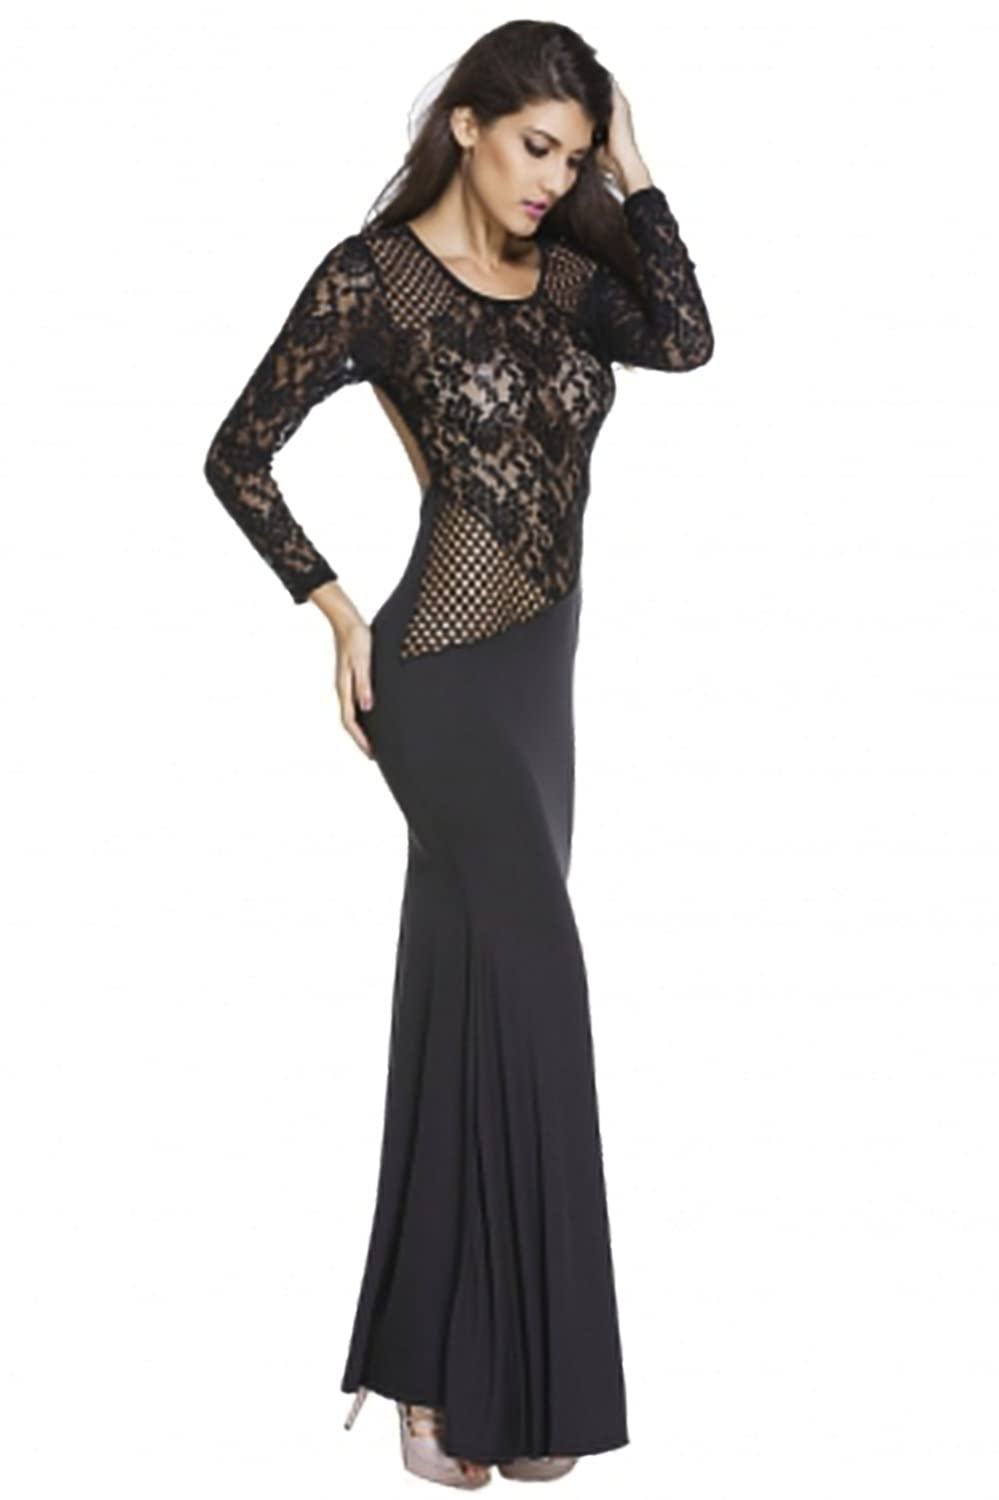 Black Lace Long Sleeve Backless Mermaid Prom Dress: Amazon.co.uk: Clothing